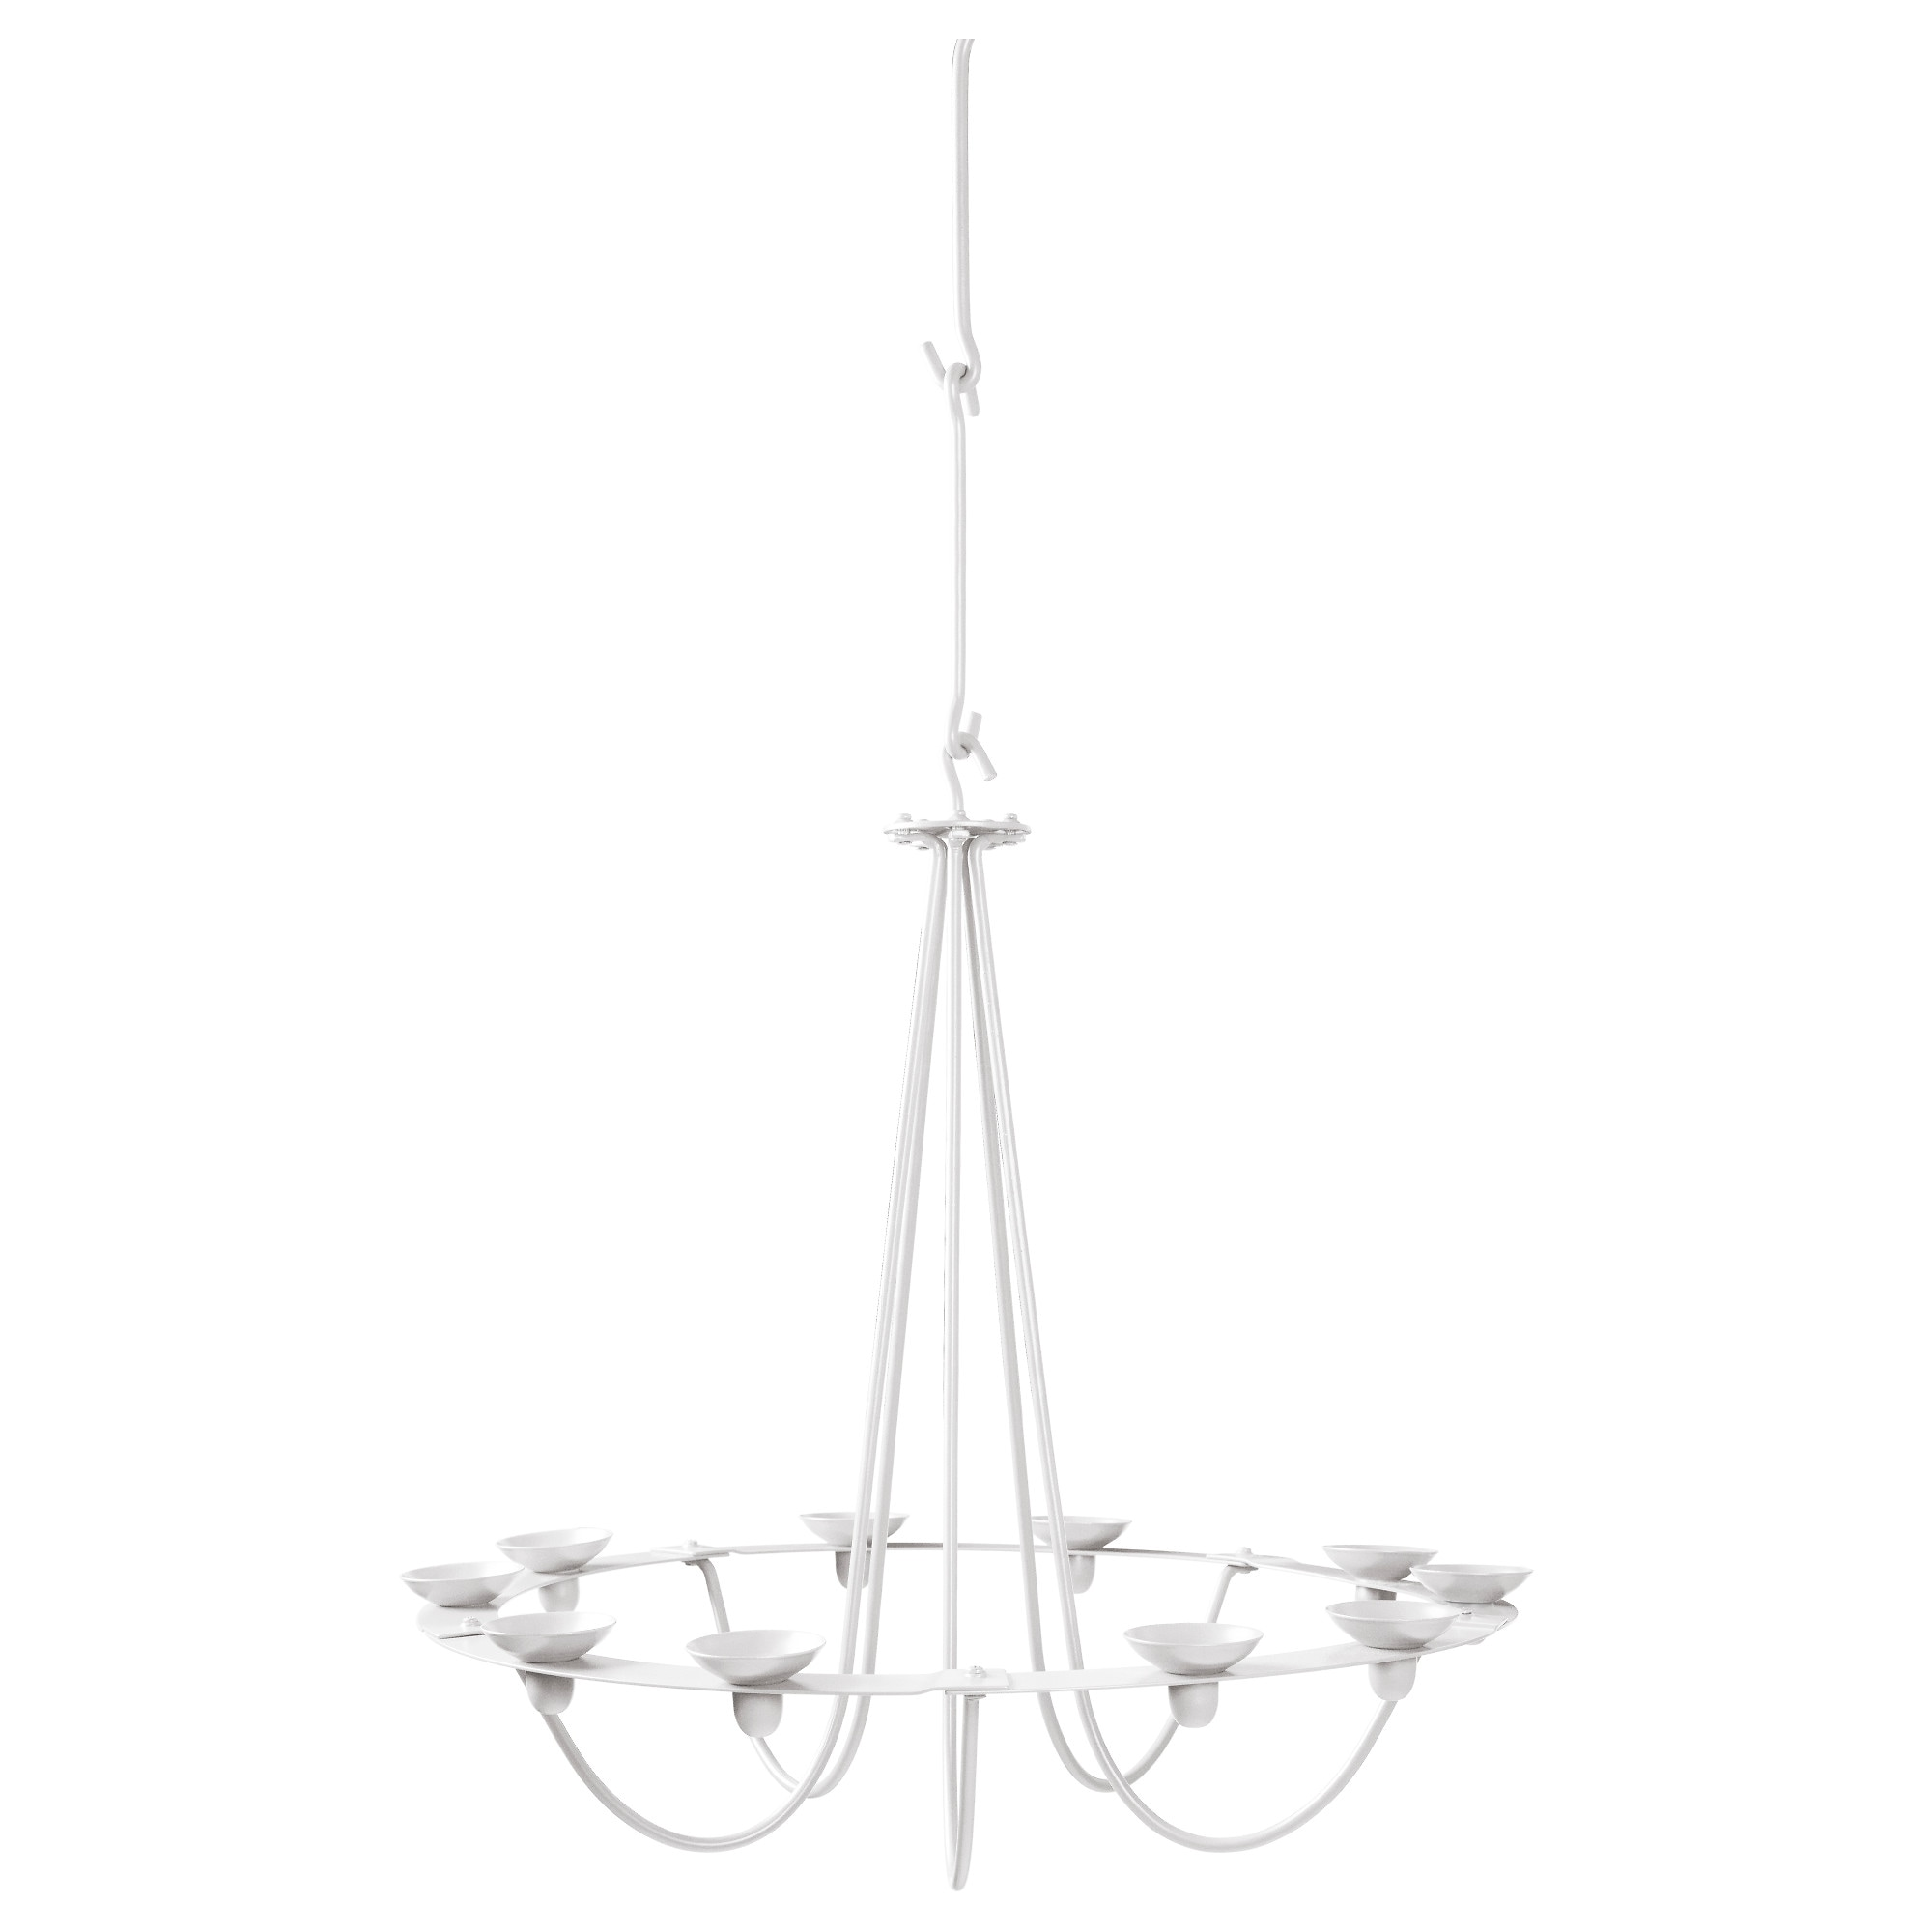 Vssad chandelier for 10 candles white ikea inter ikea systems bv 2010 2018 privacy policy aloadofball Choice Image